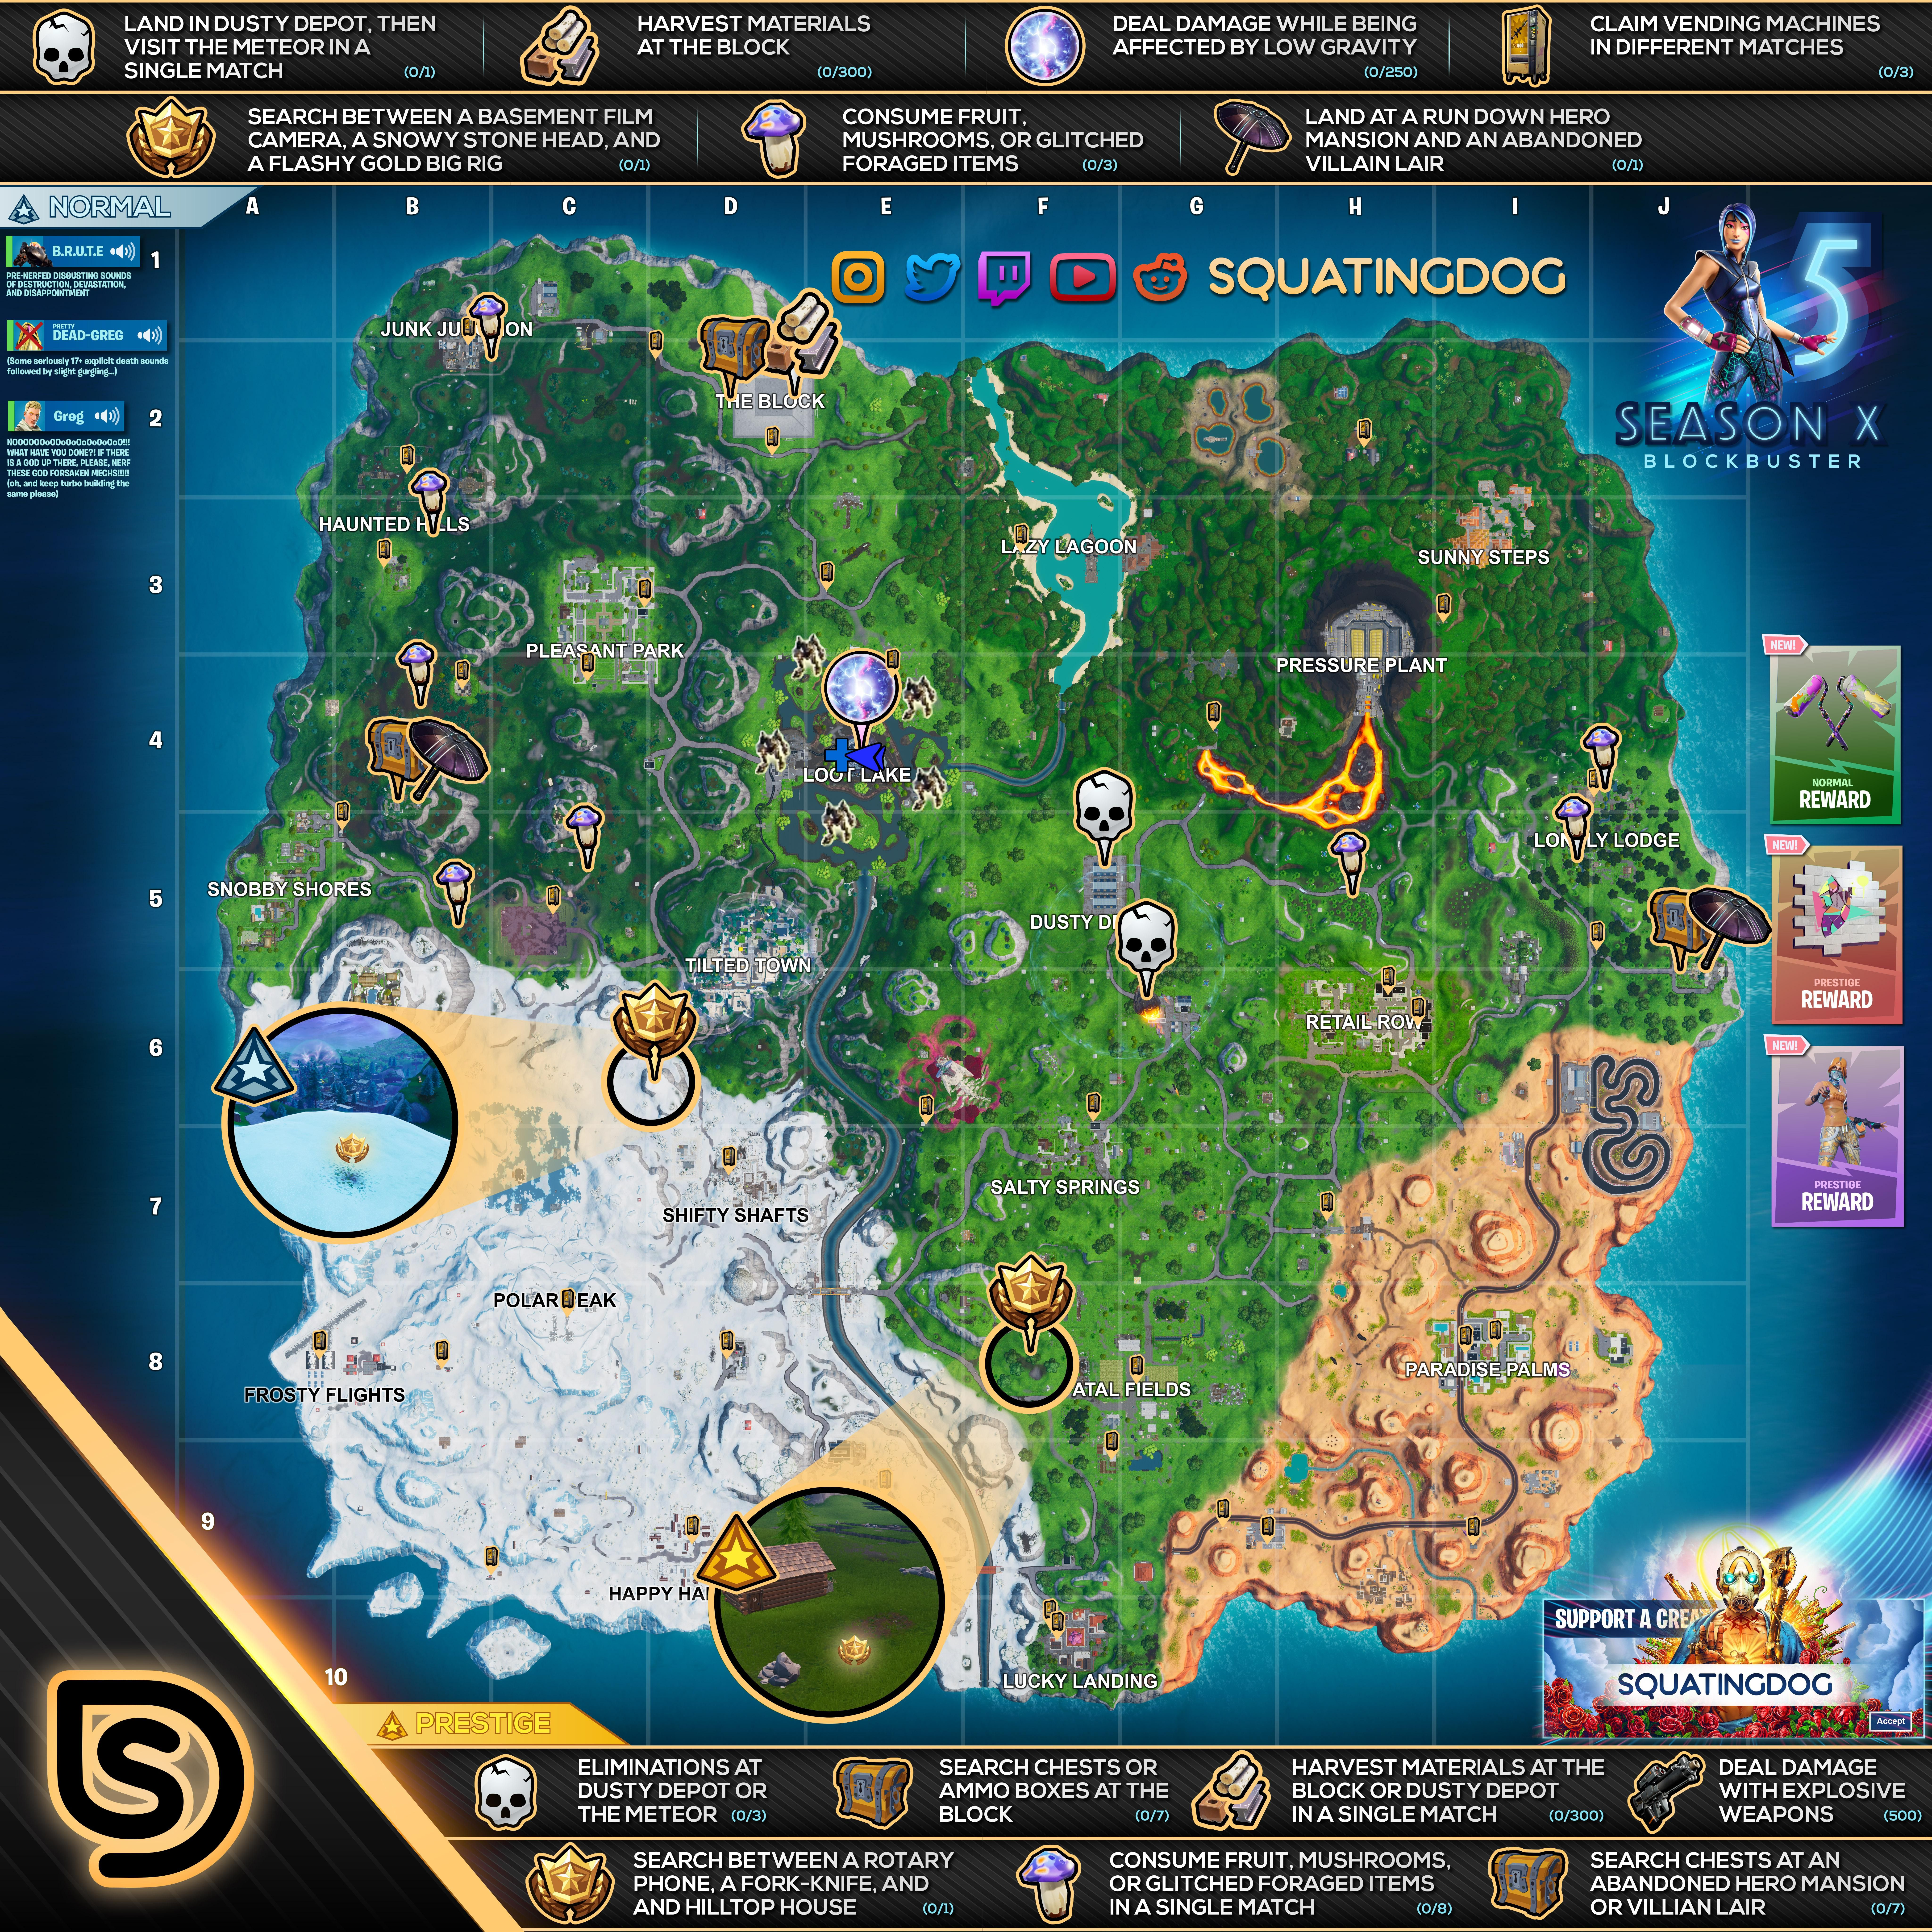 Fortnite Season X 10 Week 5 Blockbuster Cheat Sheet Challenge Locations Guide Here Is A Cheat Sheet For Fortnite Season X Week 5 Blockbuster Challenges Objecti